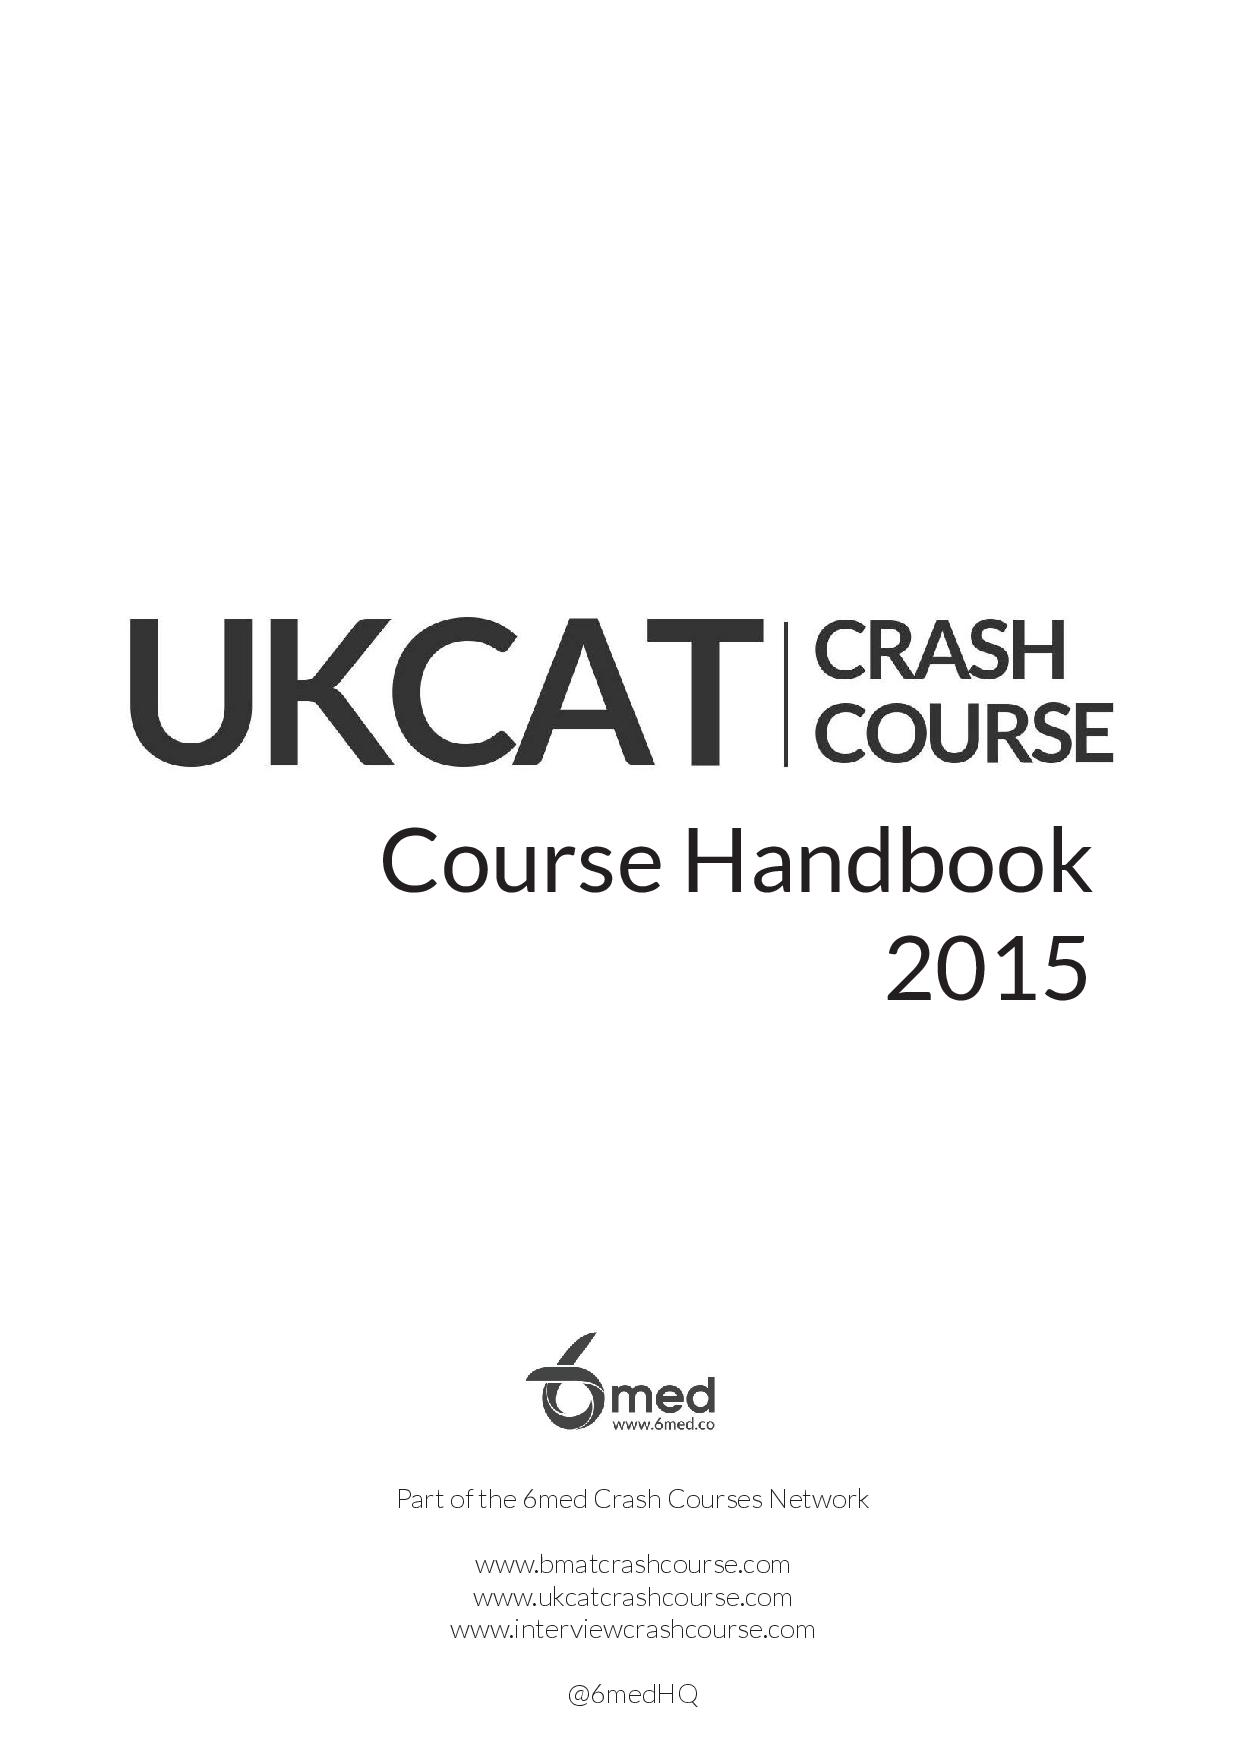 UKCAT Crash Course handbook page 1